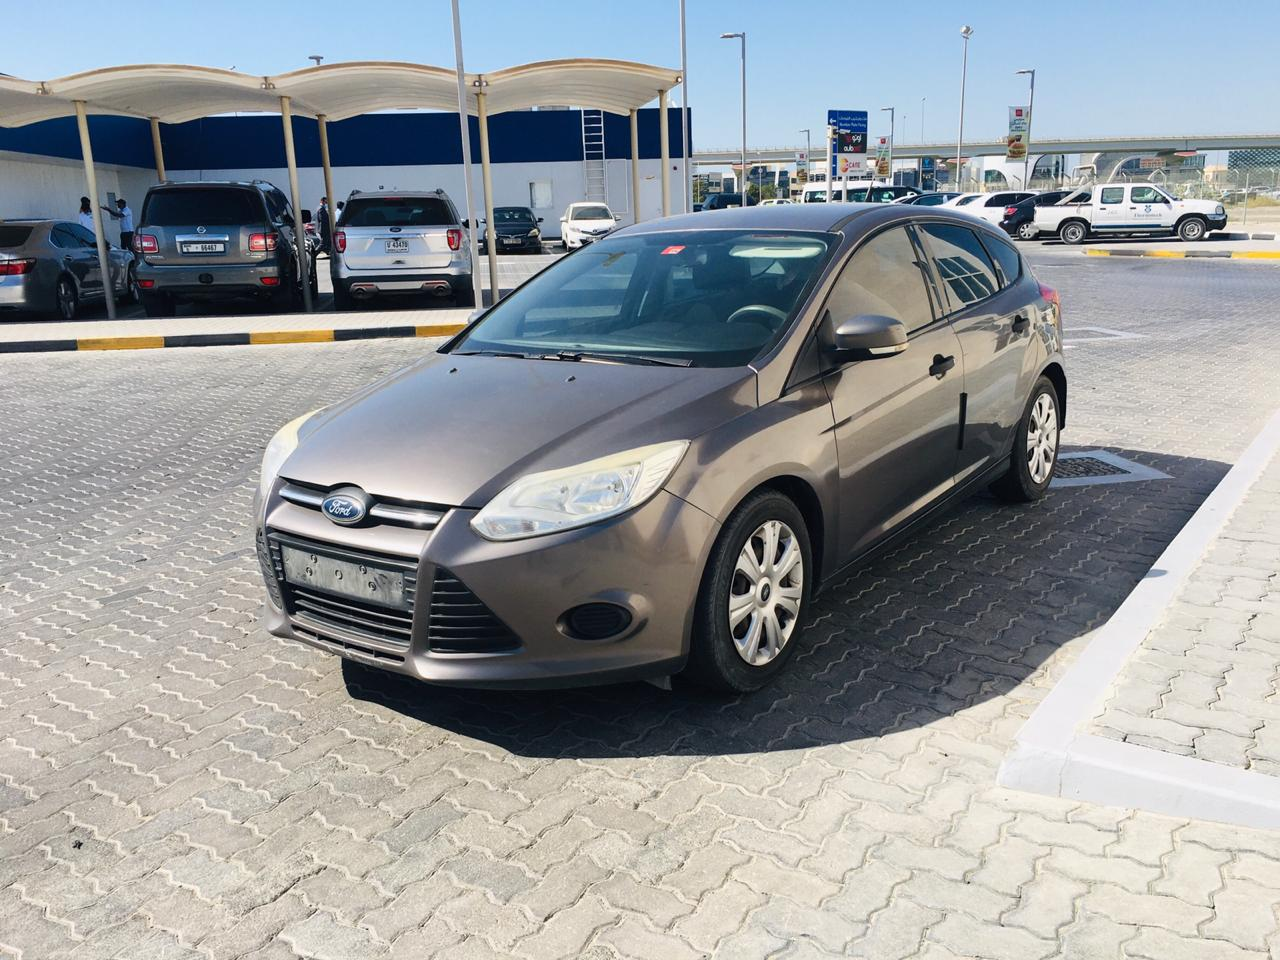 Used Ford Focus 1.6L 2013 For Sale In Dubai